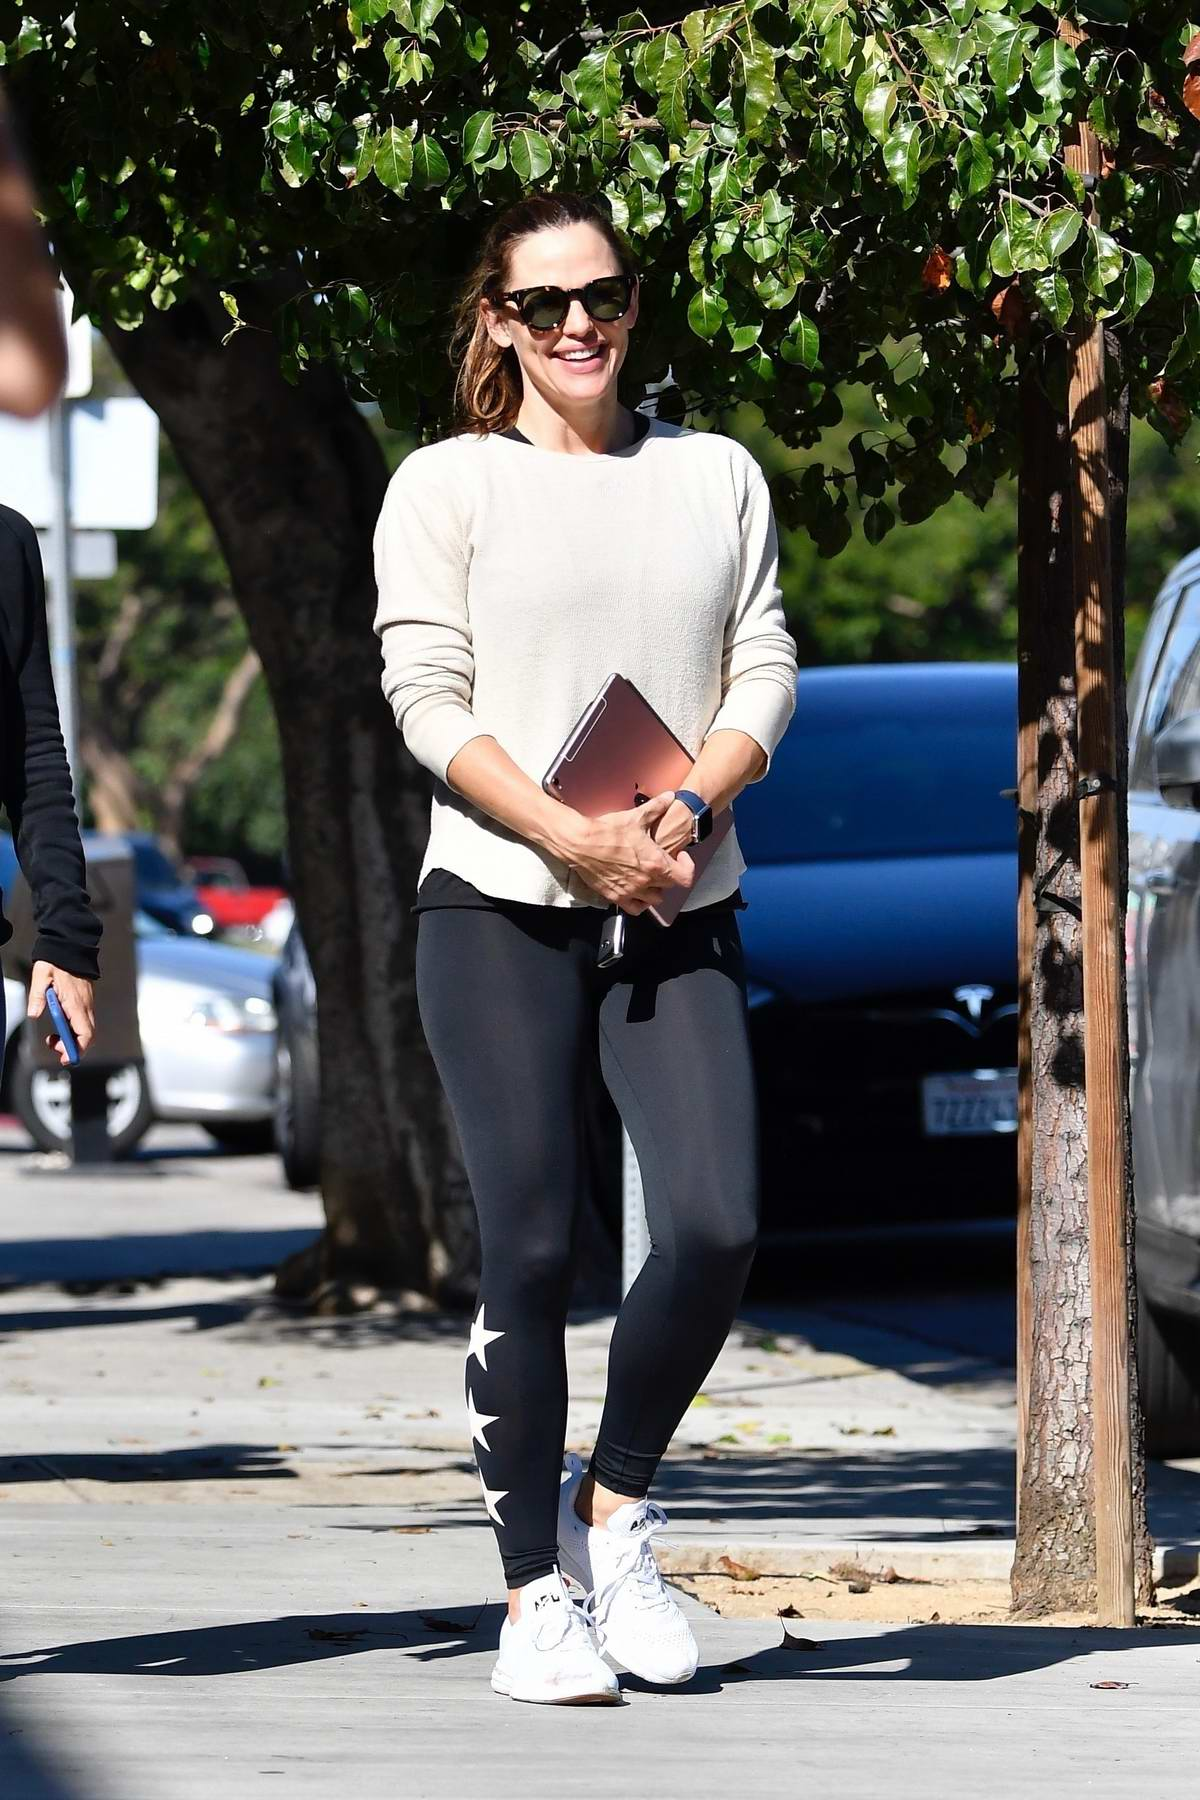 Jennifer Garner seen wearing an off-white sweatshirt and black leggings while out for a meeting in Beverly Hills, Los Angeles